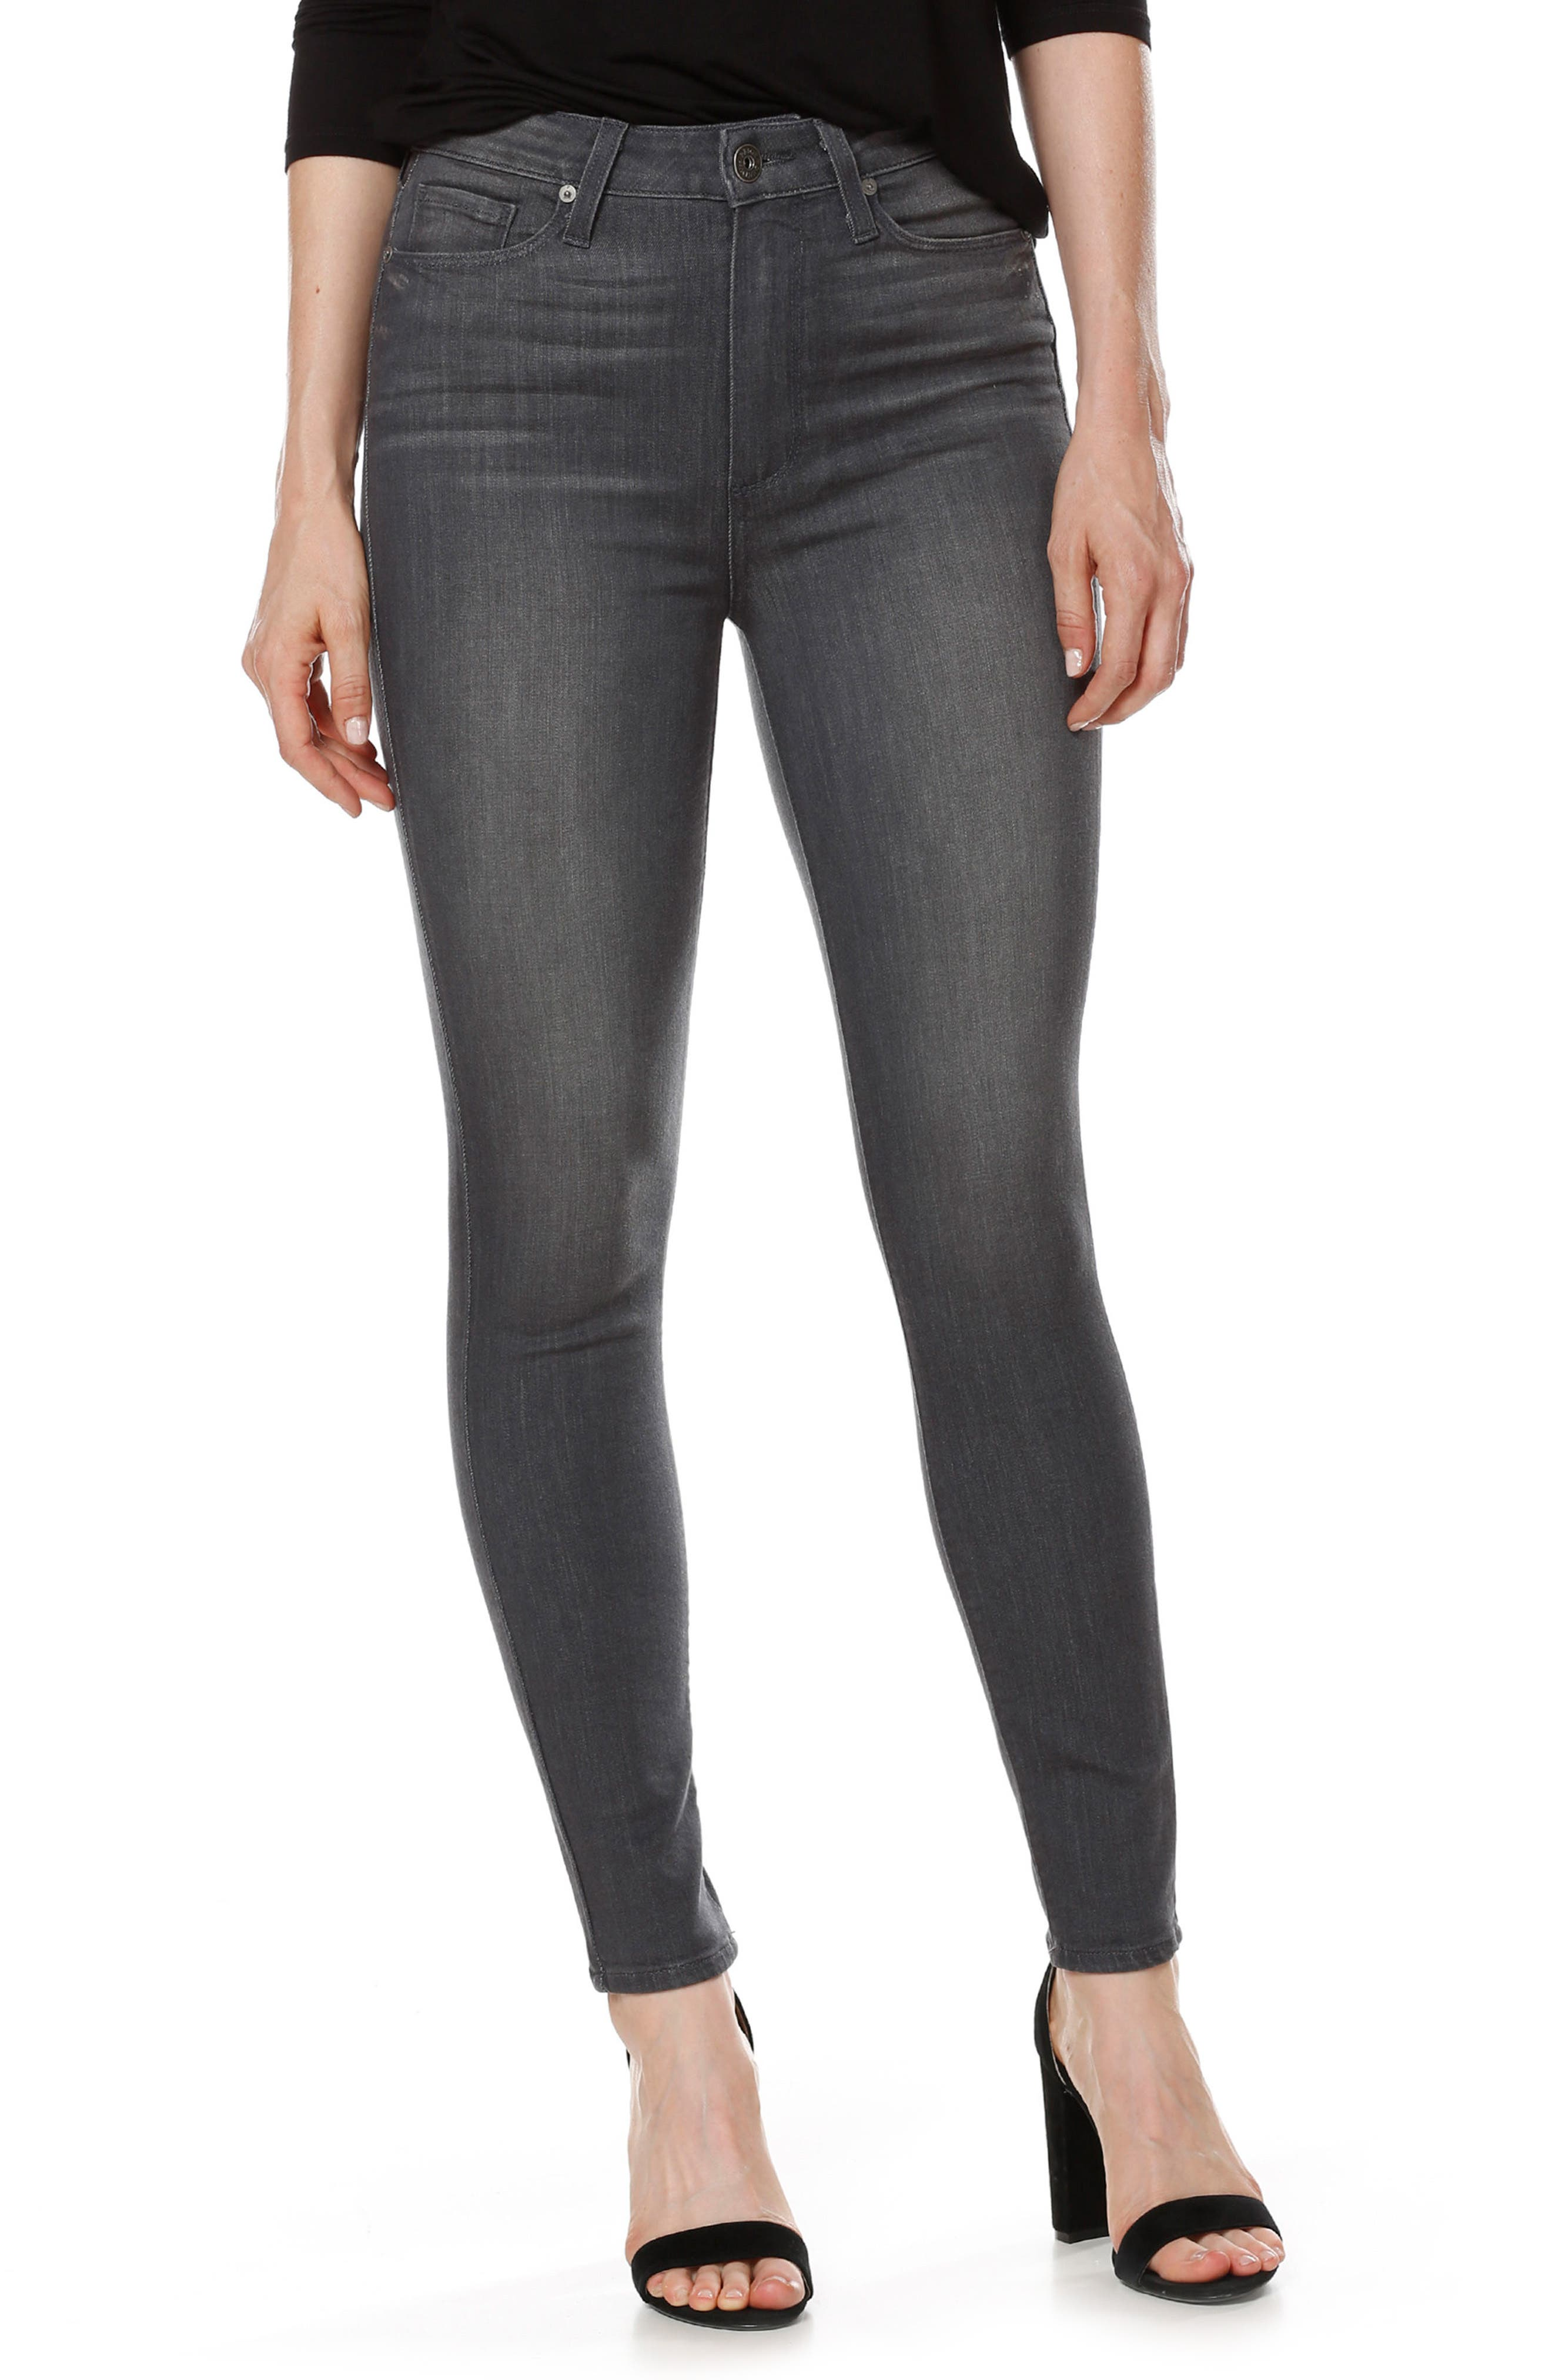 PAIGE Transcend - Margot High Waist Ankle Ultra Skinny Jeans (Summit Grey)